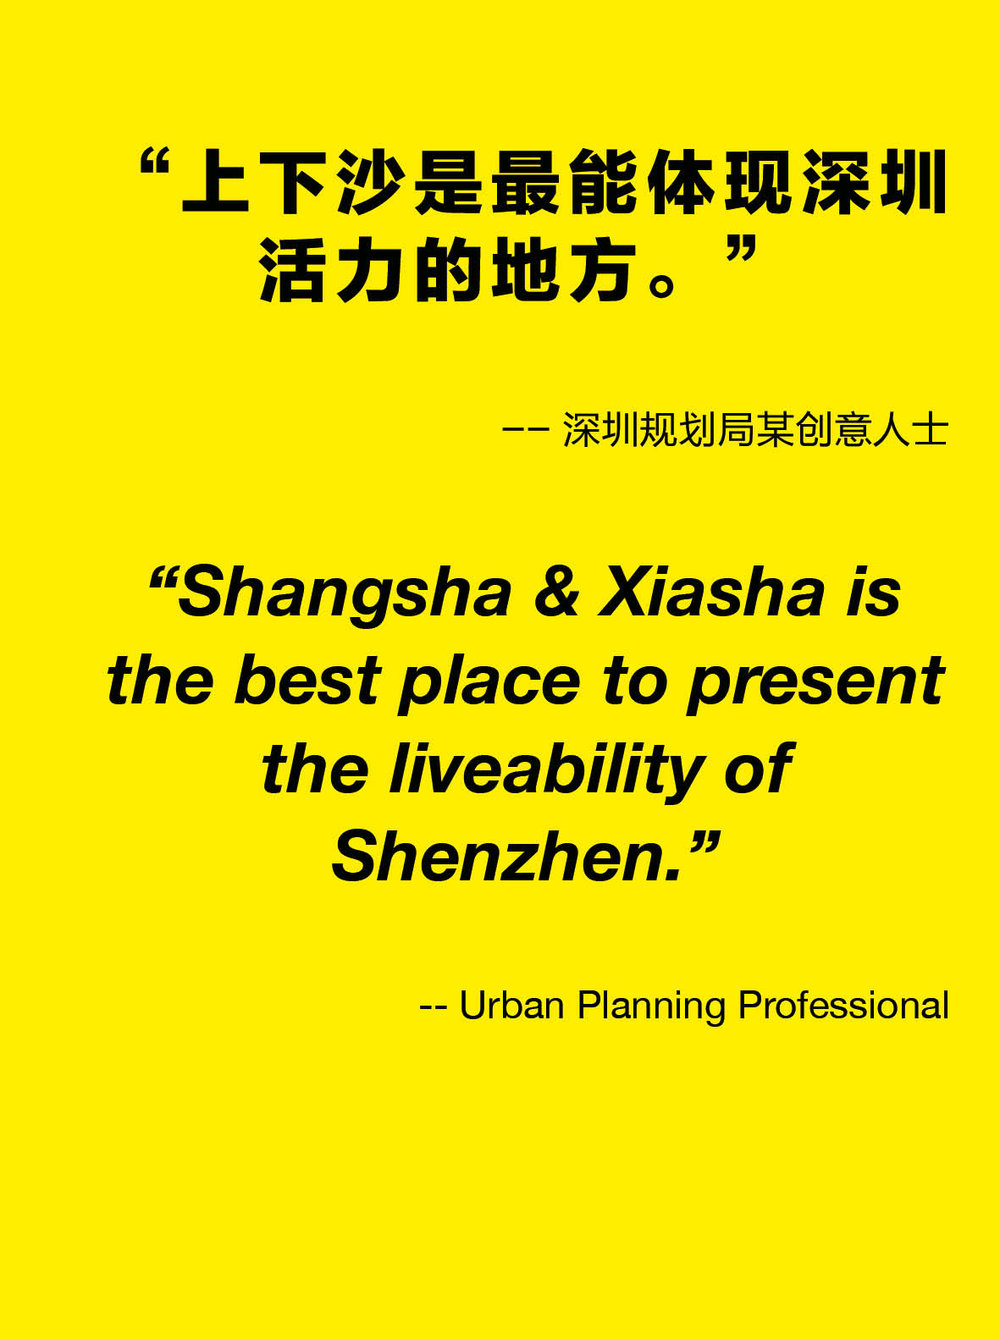 20180106_Shangsha Quotes test035.jpg